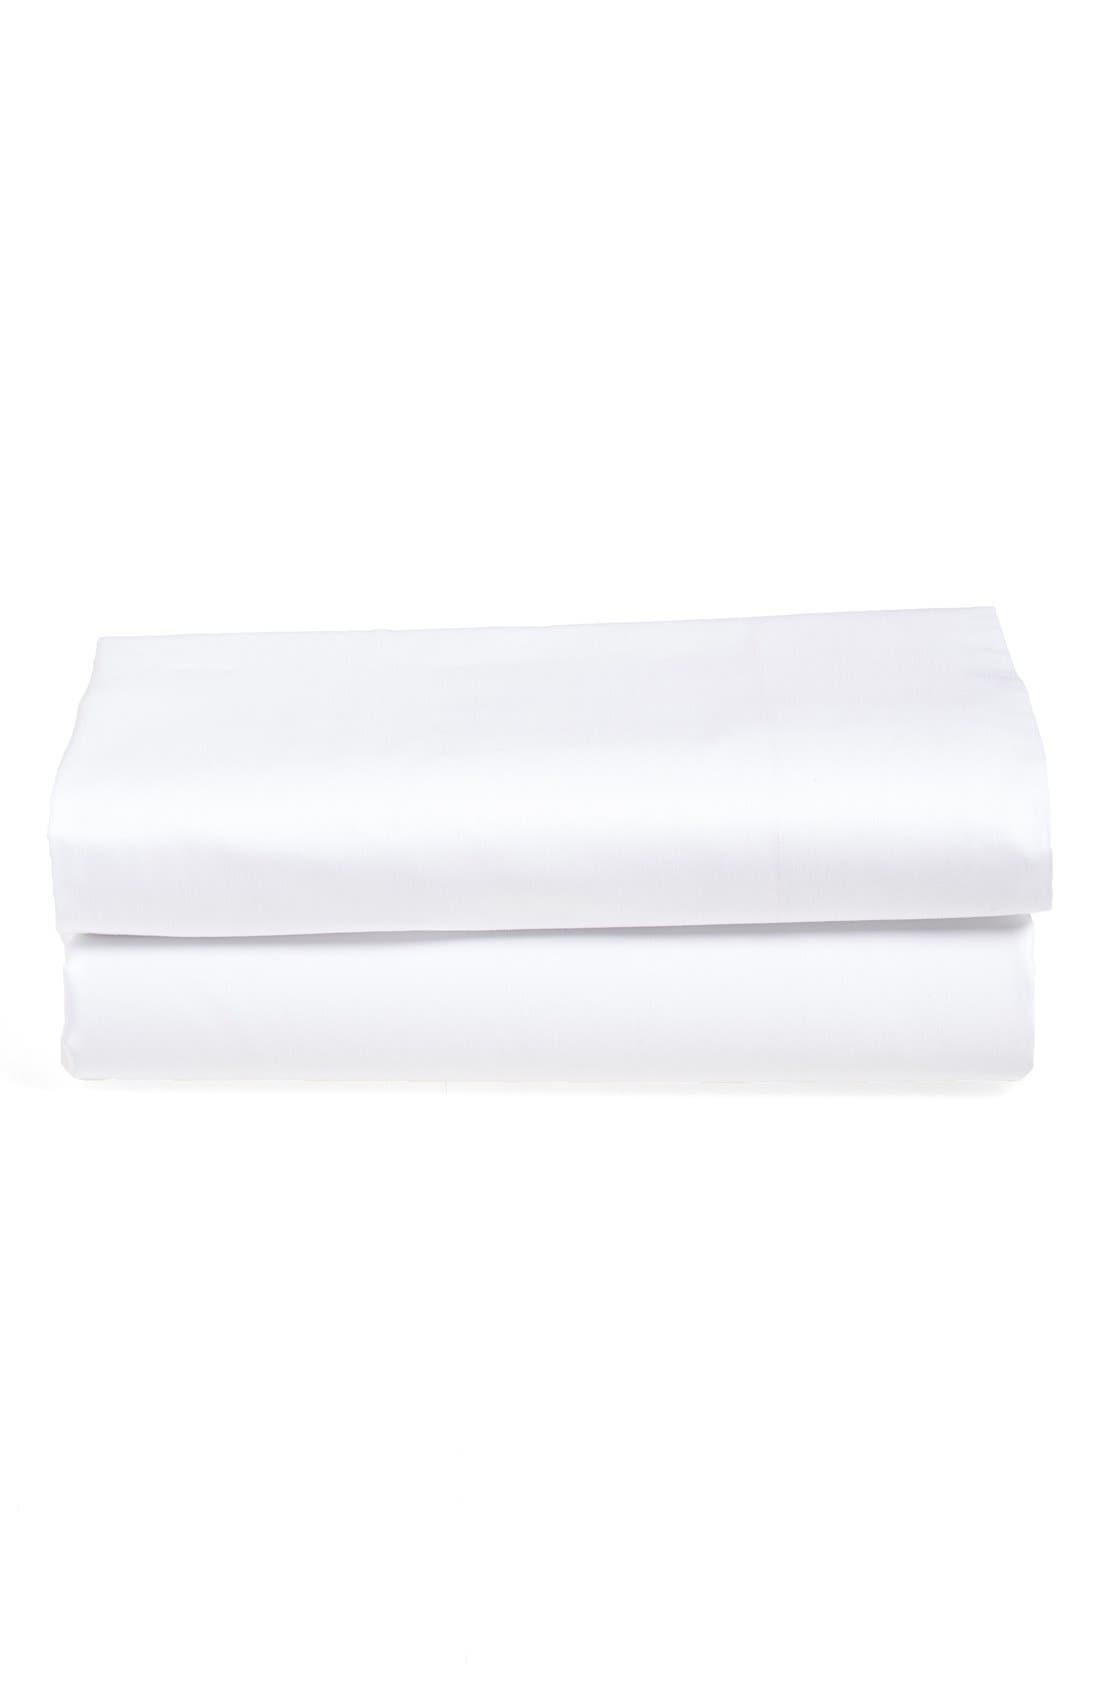 'Ultra Luxe' 600 Thread Count Fitted Sheet,                         Main,                         color, 100